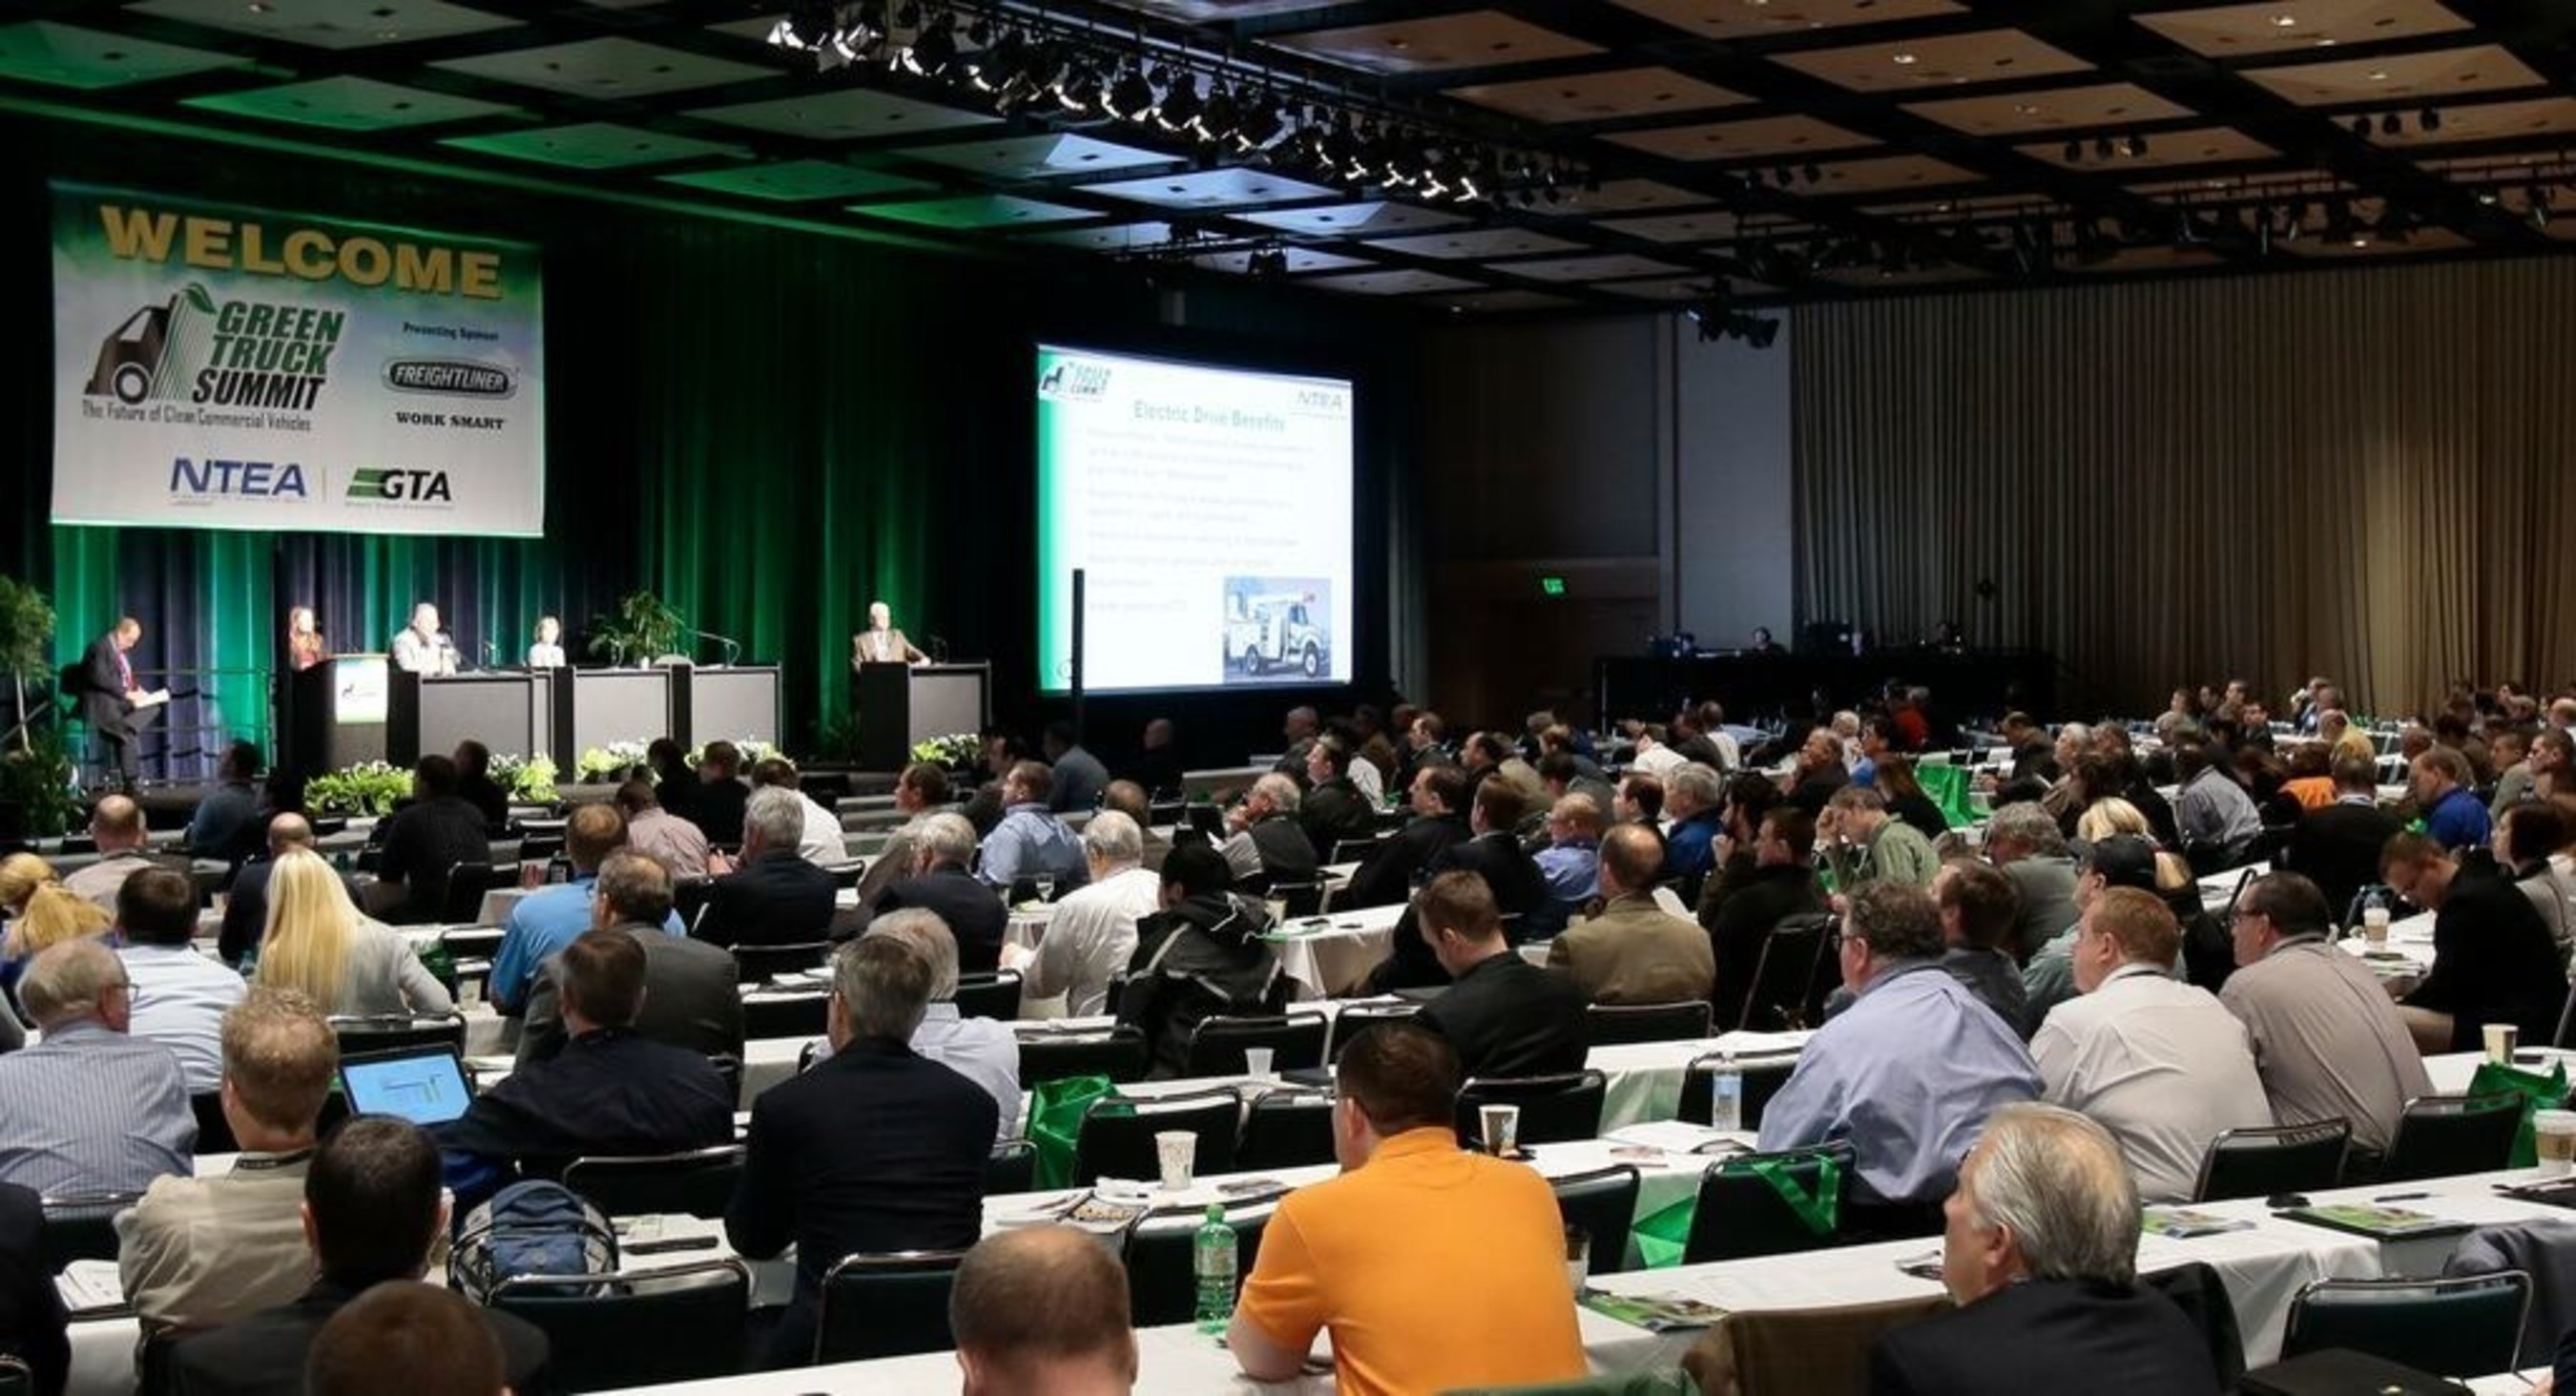 New Green Truck Summit schedule provides more educational opportunities than ever before